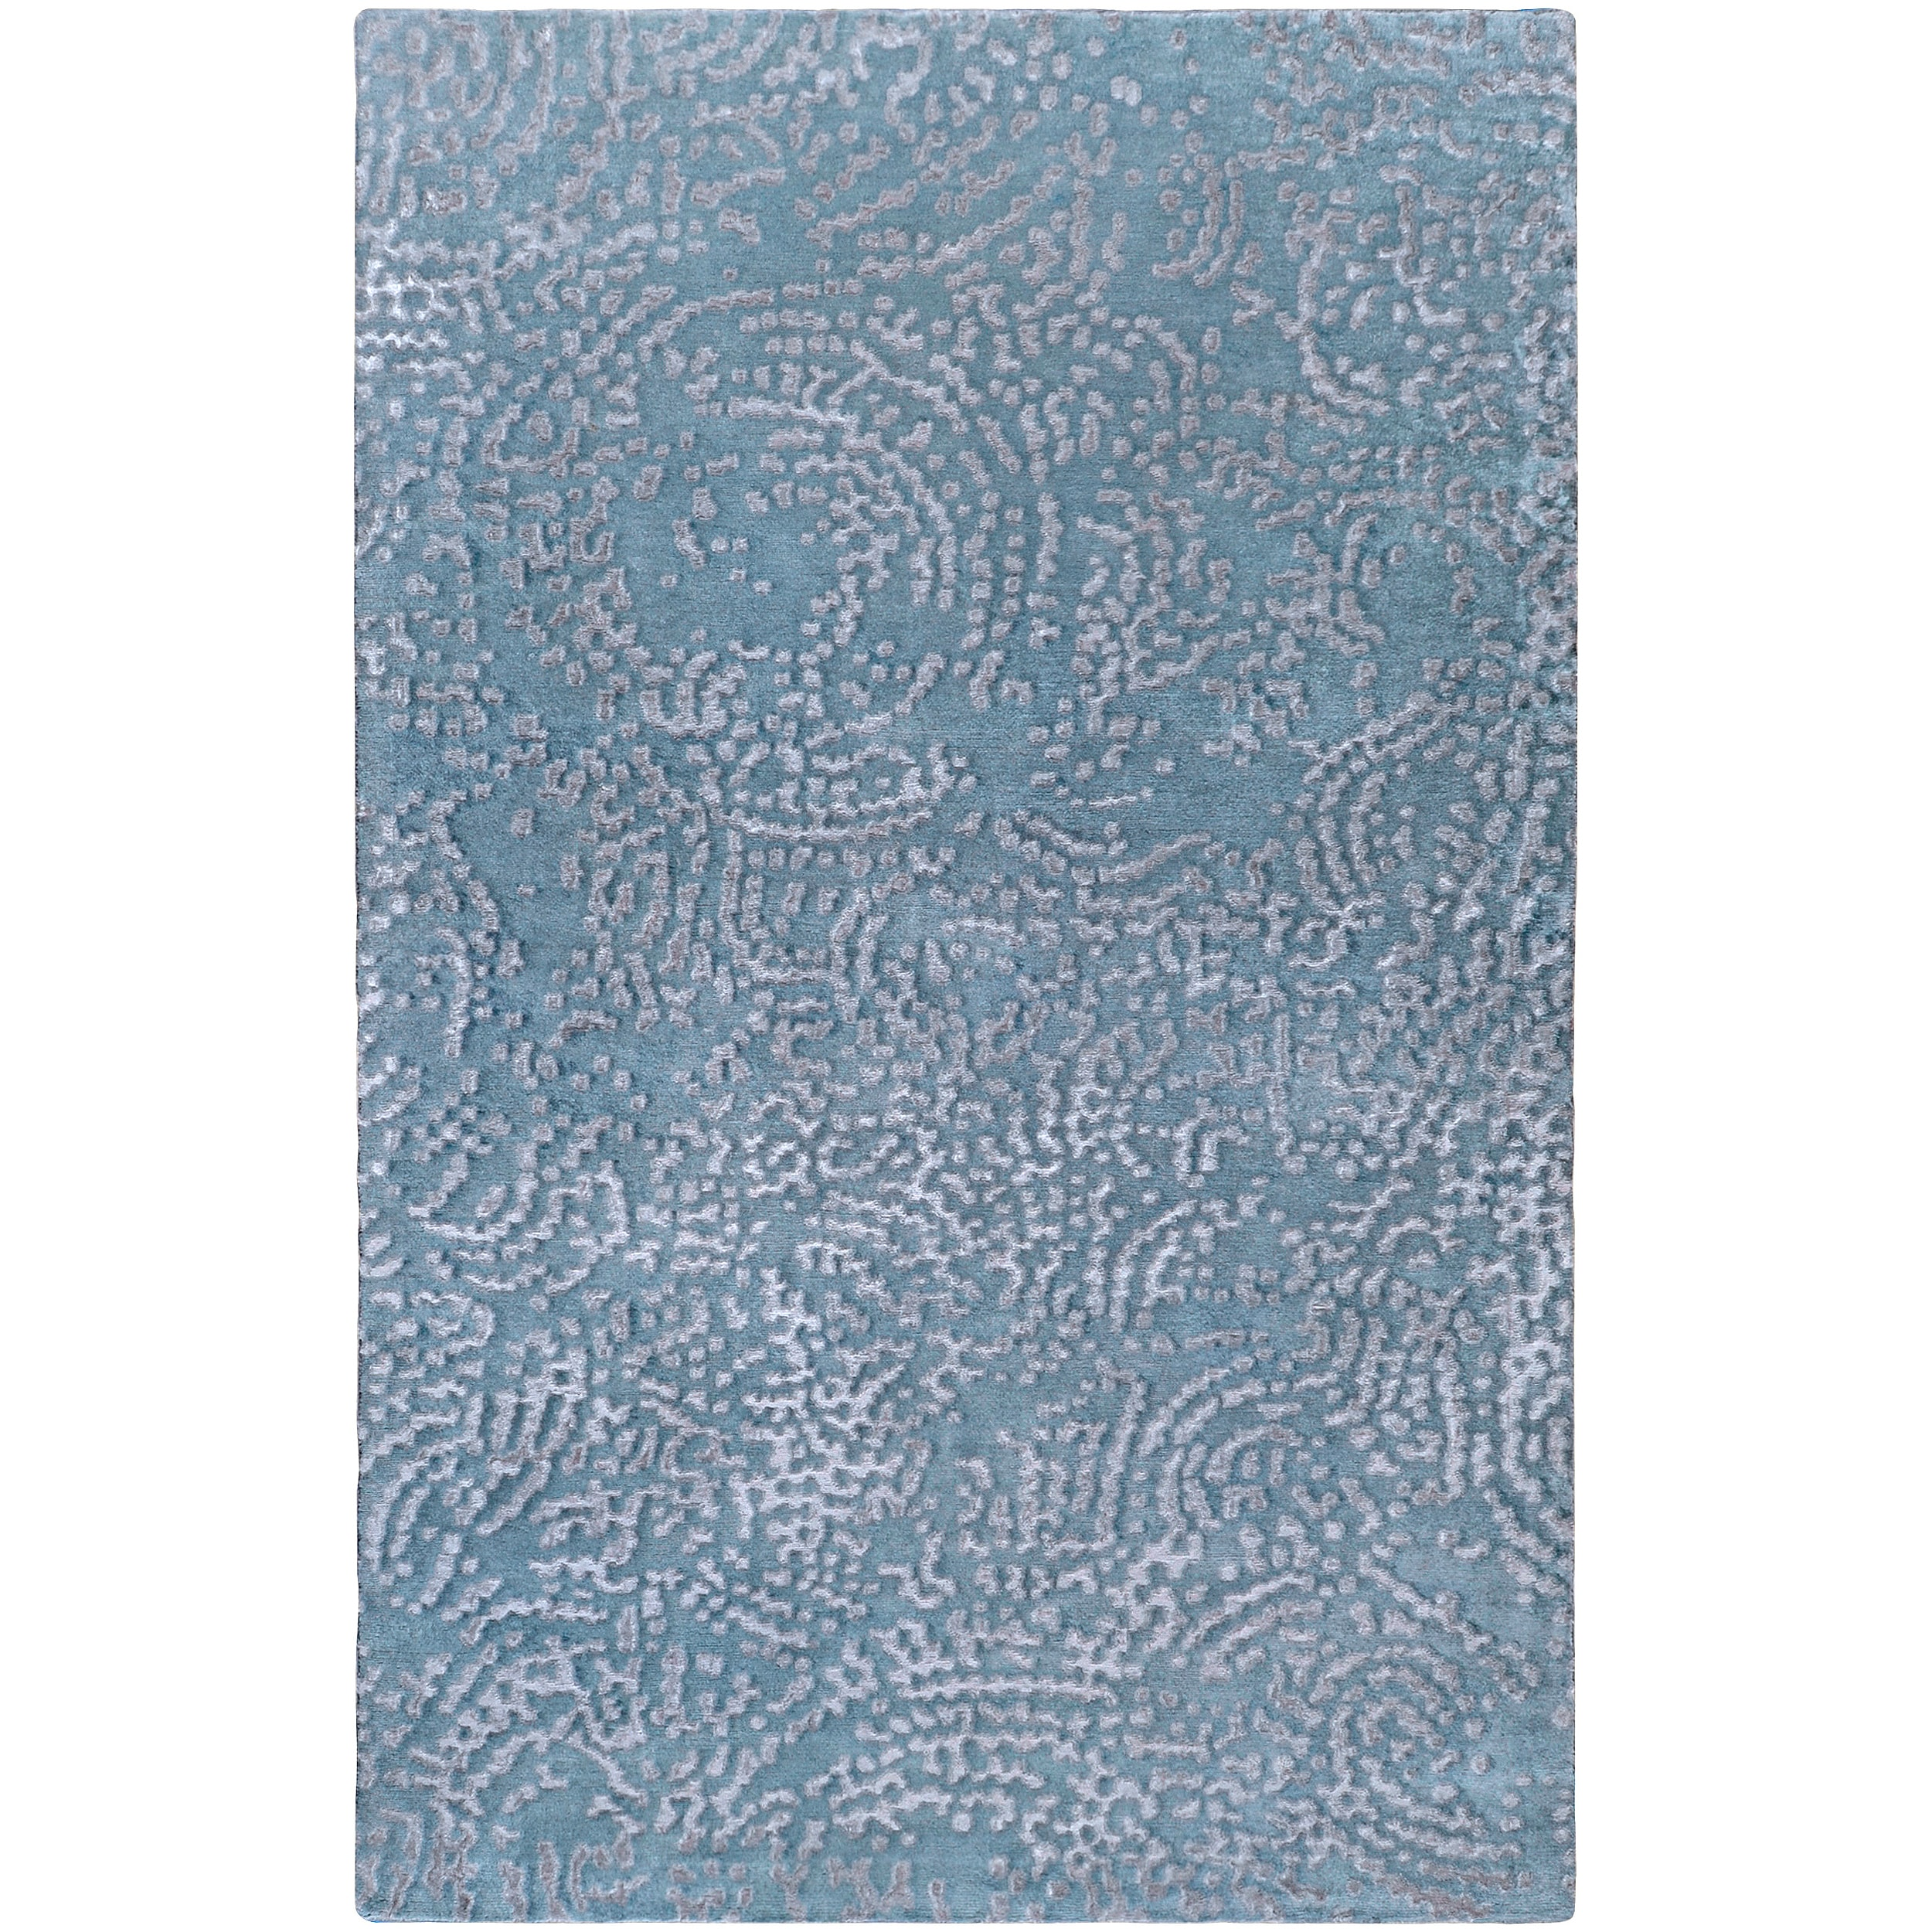 Hand Knotted Pale Blue Dale Abstract Design Wool Rug (4' x 6')